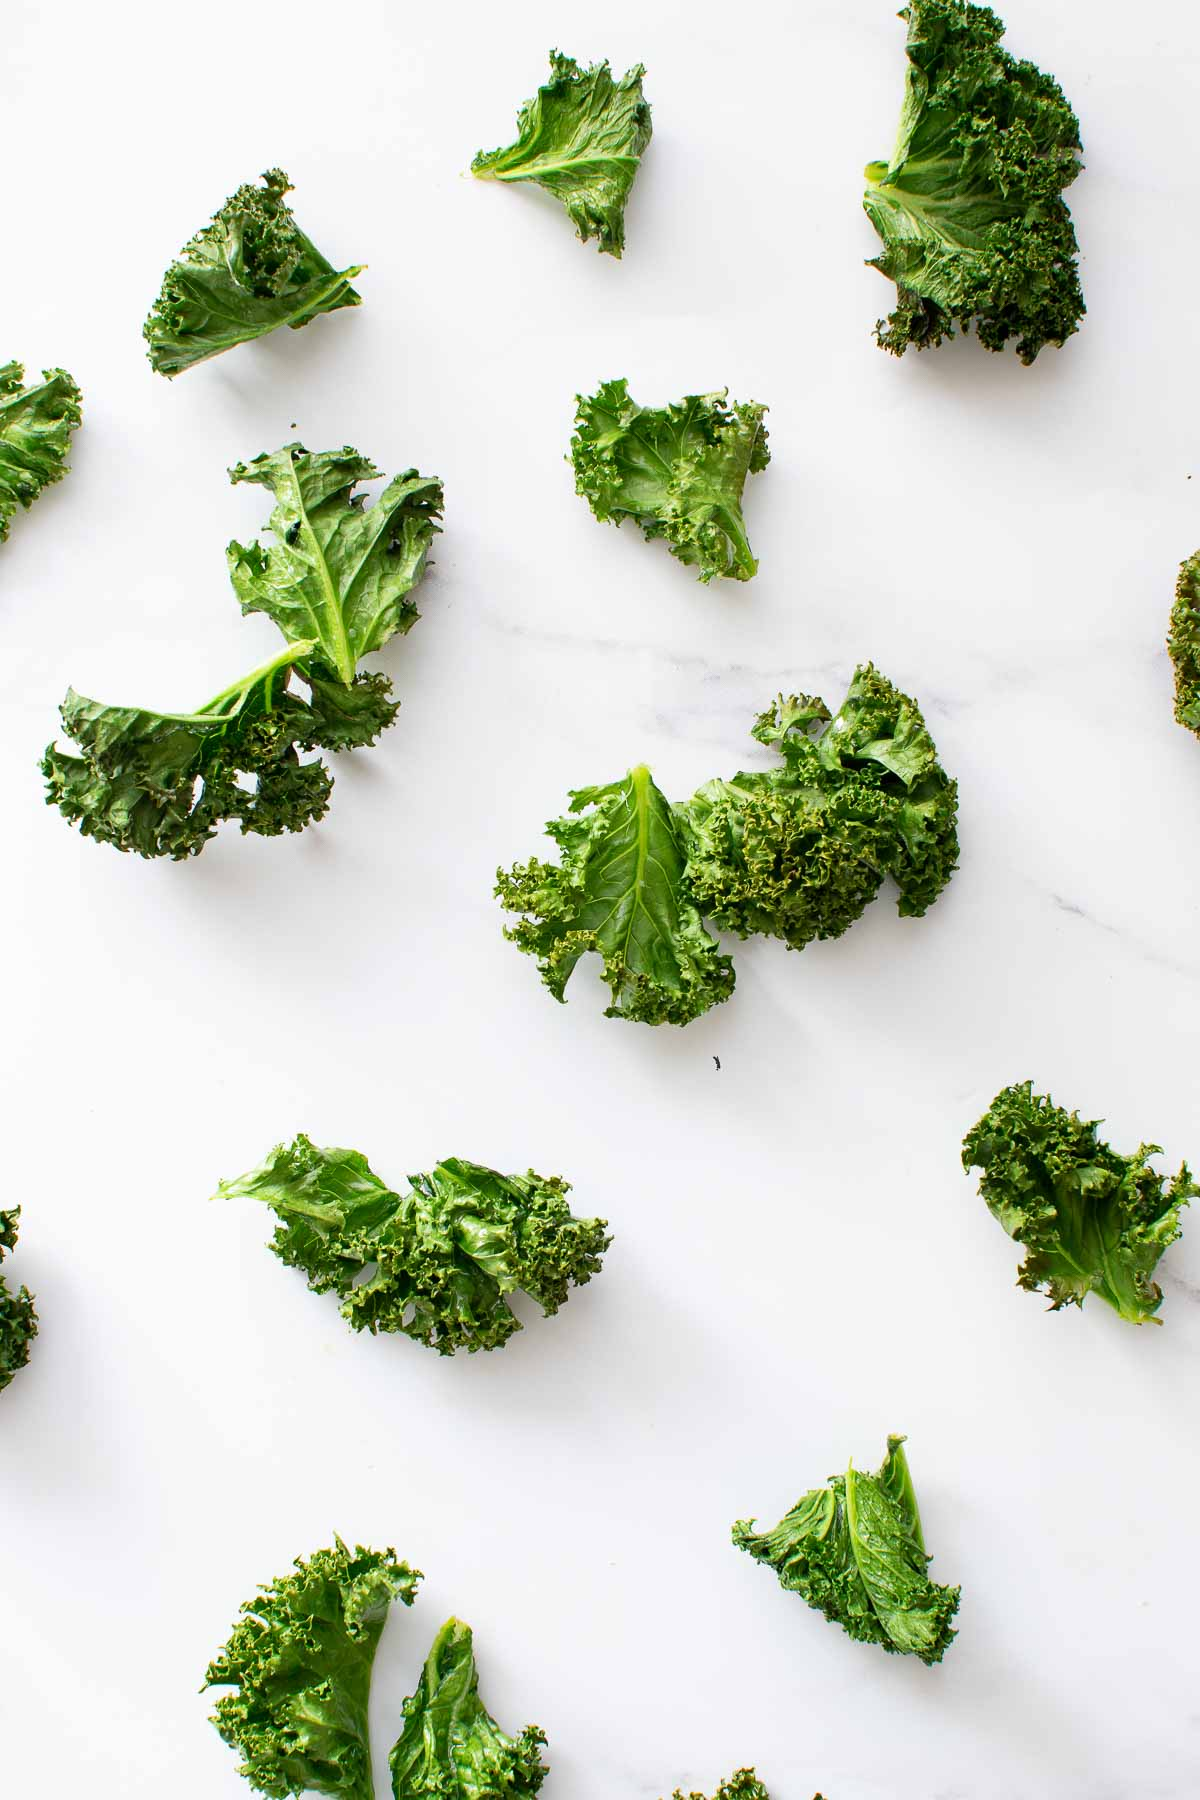 Kale chips scattered on a table.